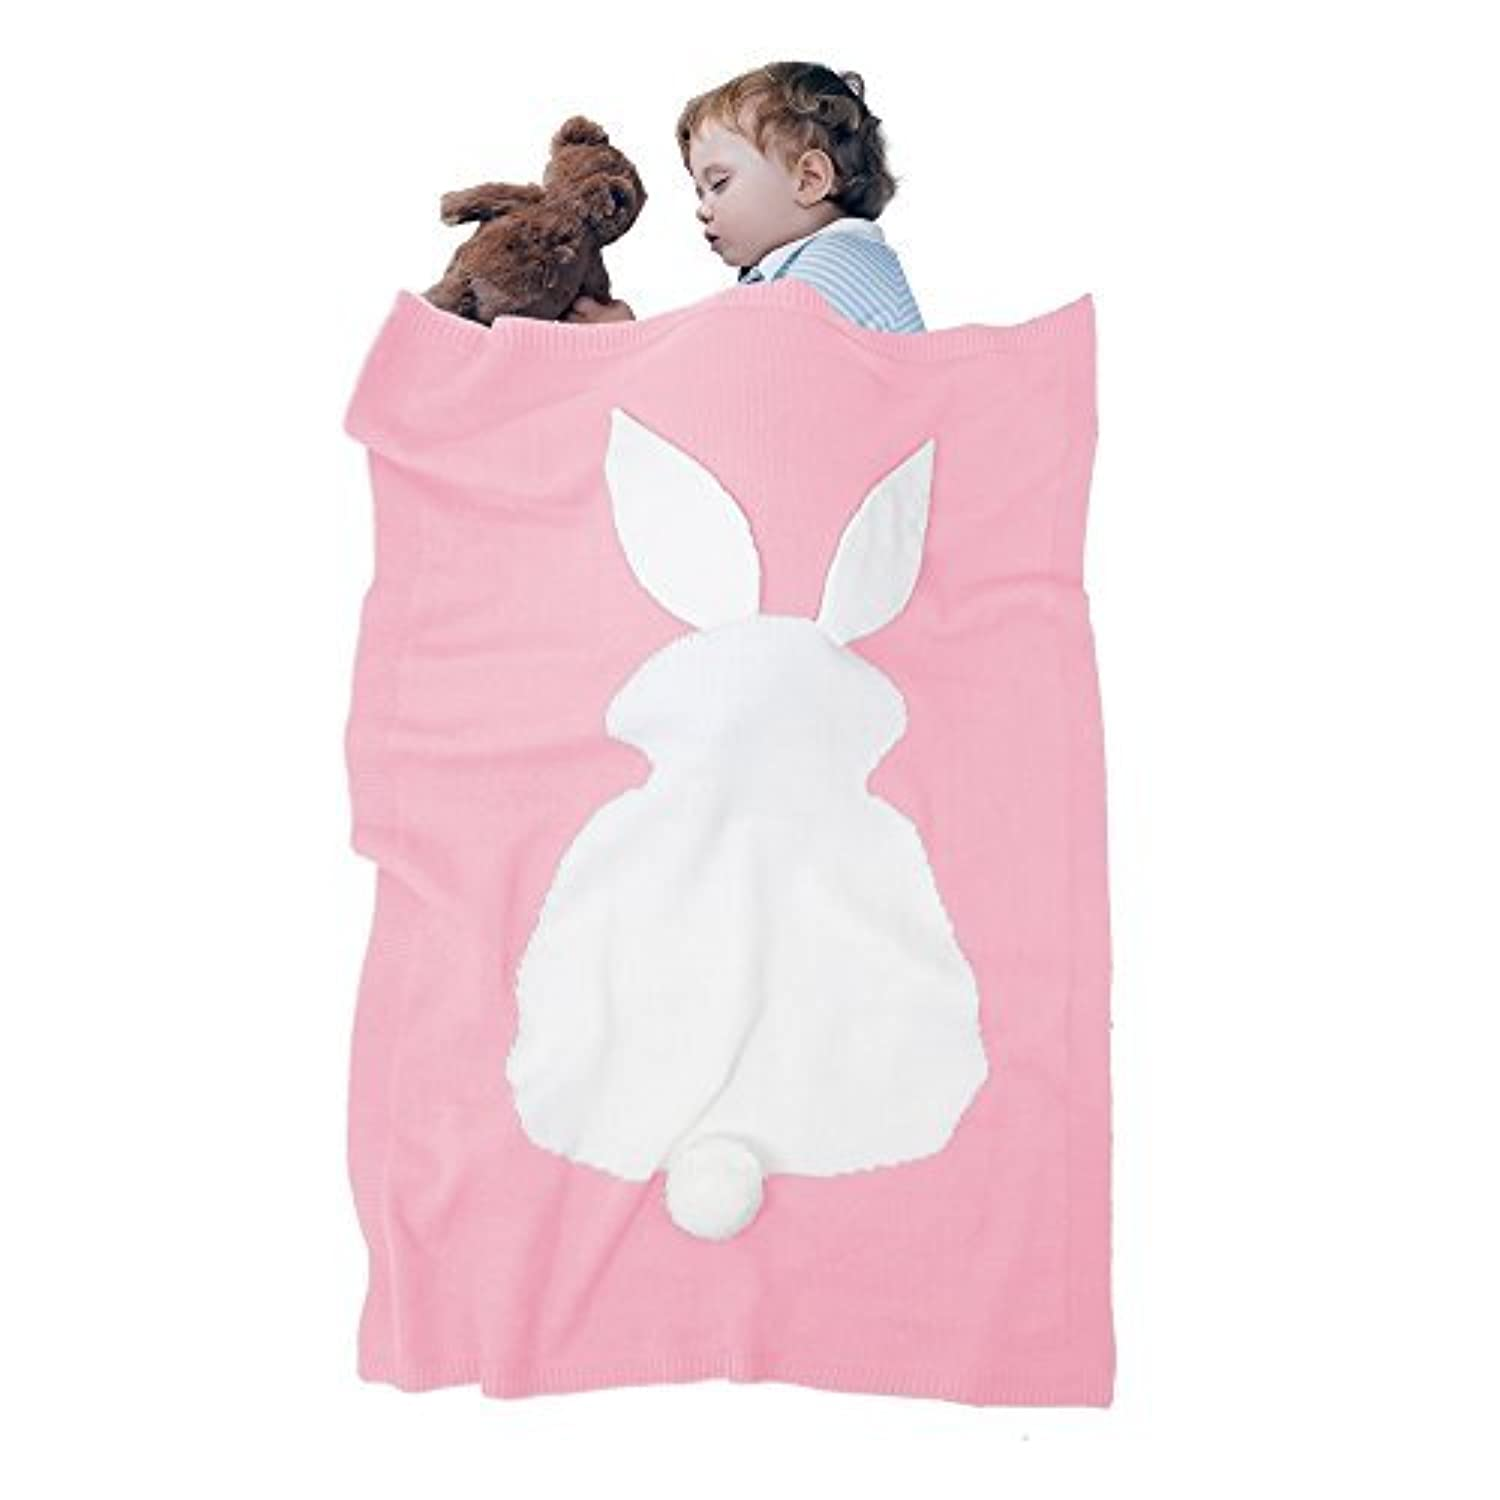 Baby Blankets,Amyhomie rabbit blanket,Baby Kids Cute Blanket Wrap Swaddle,Lovely Rabbit Soft Warm Toddler Blankets with Rabbit Ears &Tails (Pink) [並行輸入品]